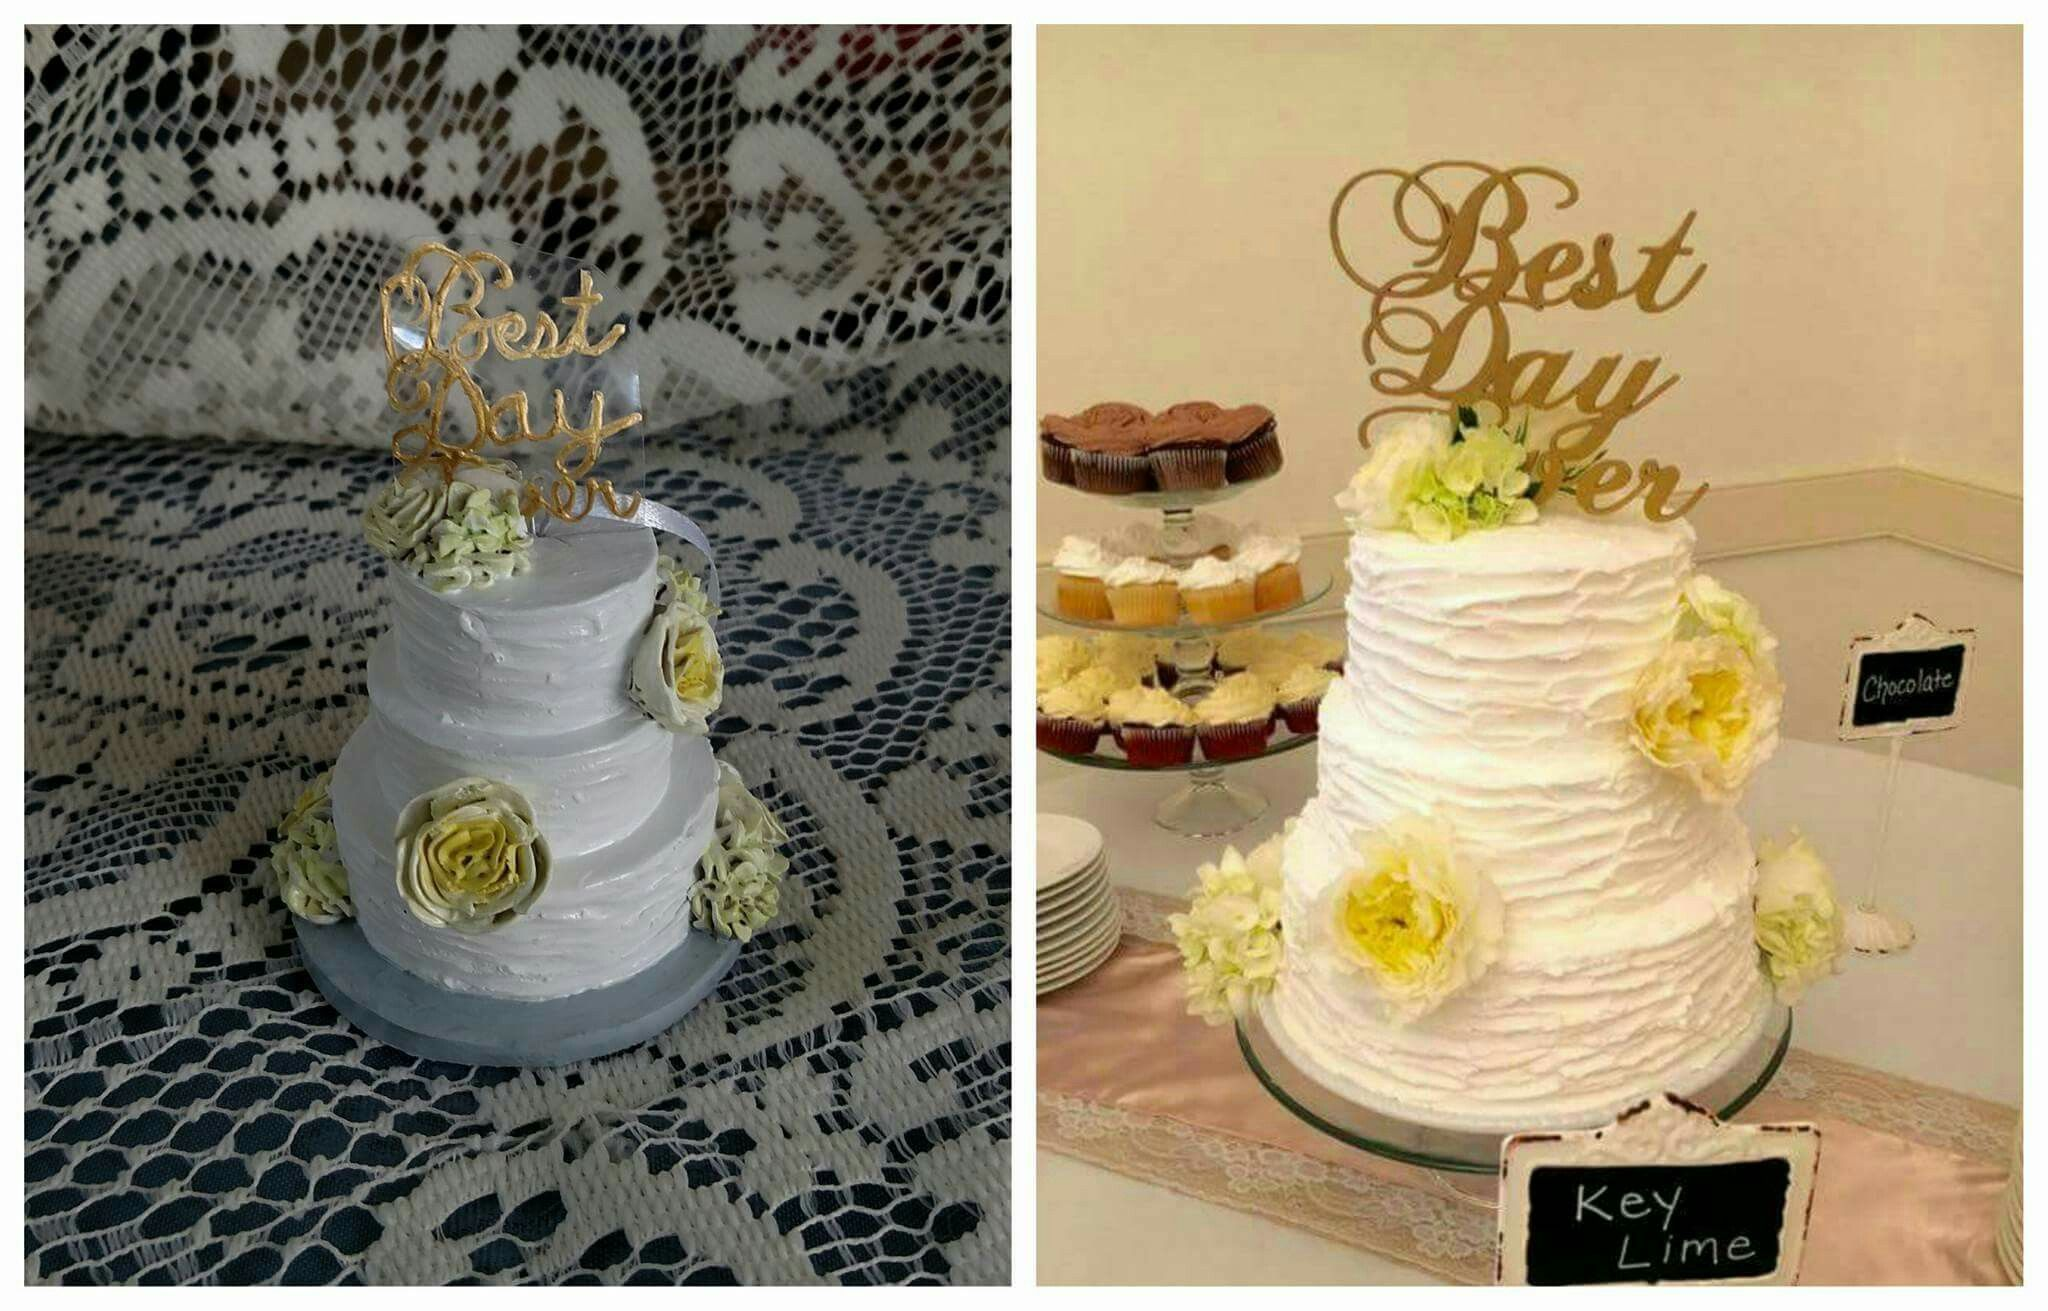 wedding cake replica ornament handmade miniatures gift www etsy com     wedding cake replica ornament handmade miniatures gift  www etsy com shop foreverfigurines